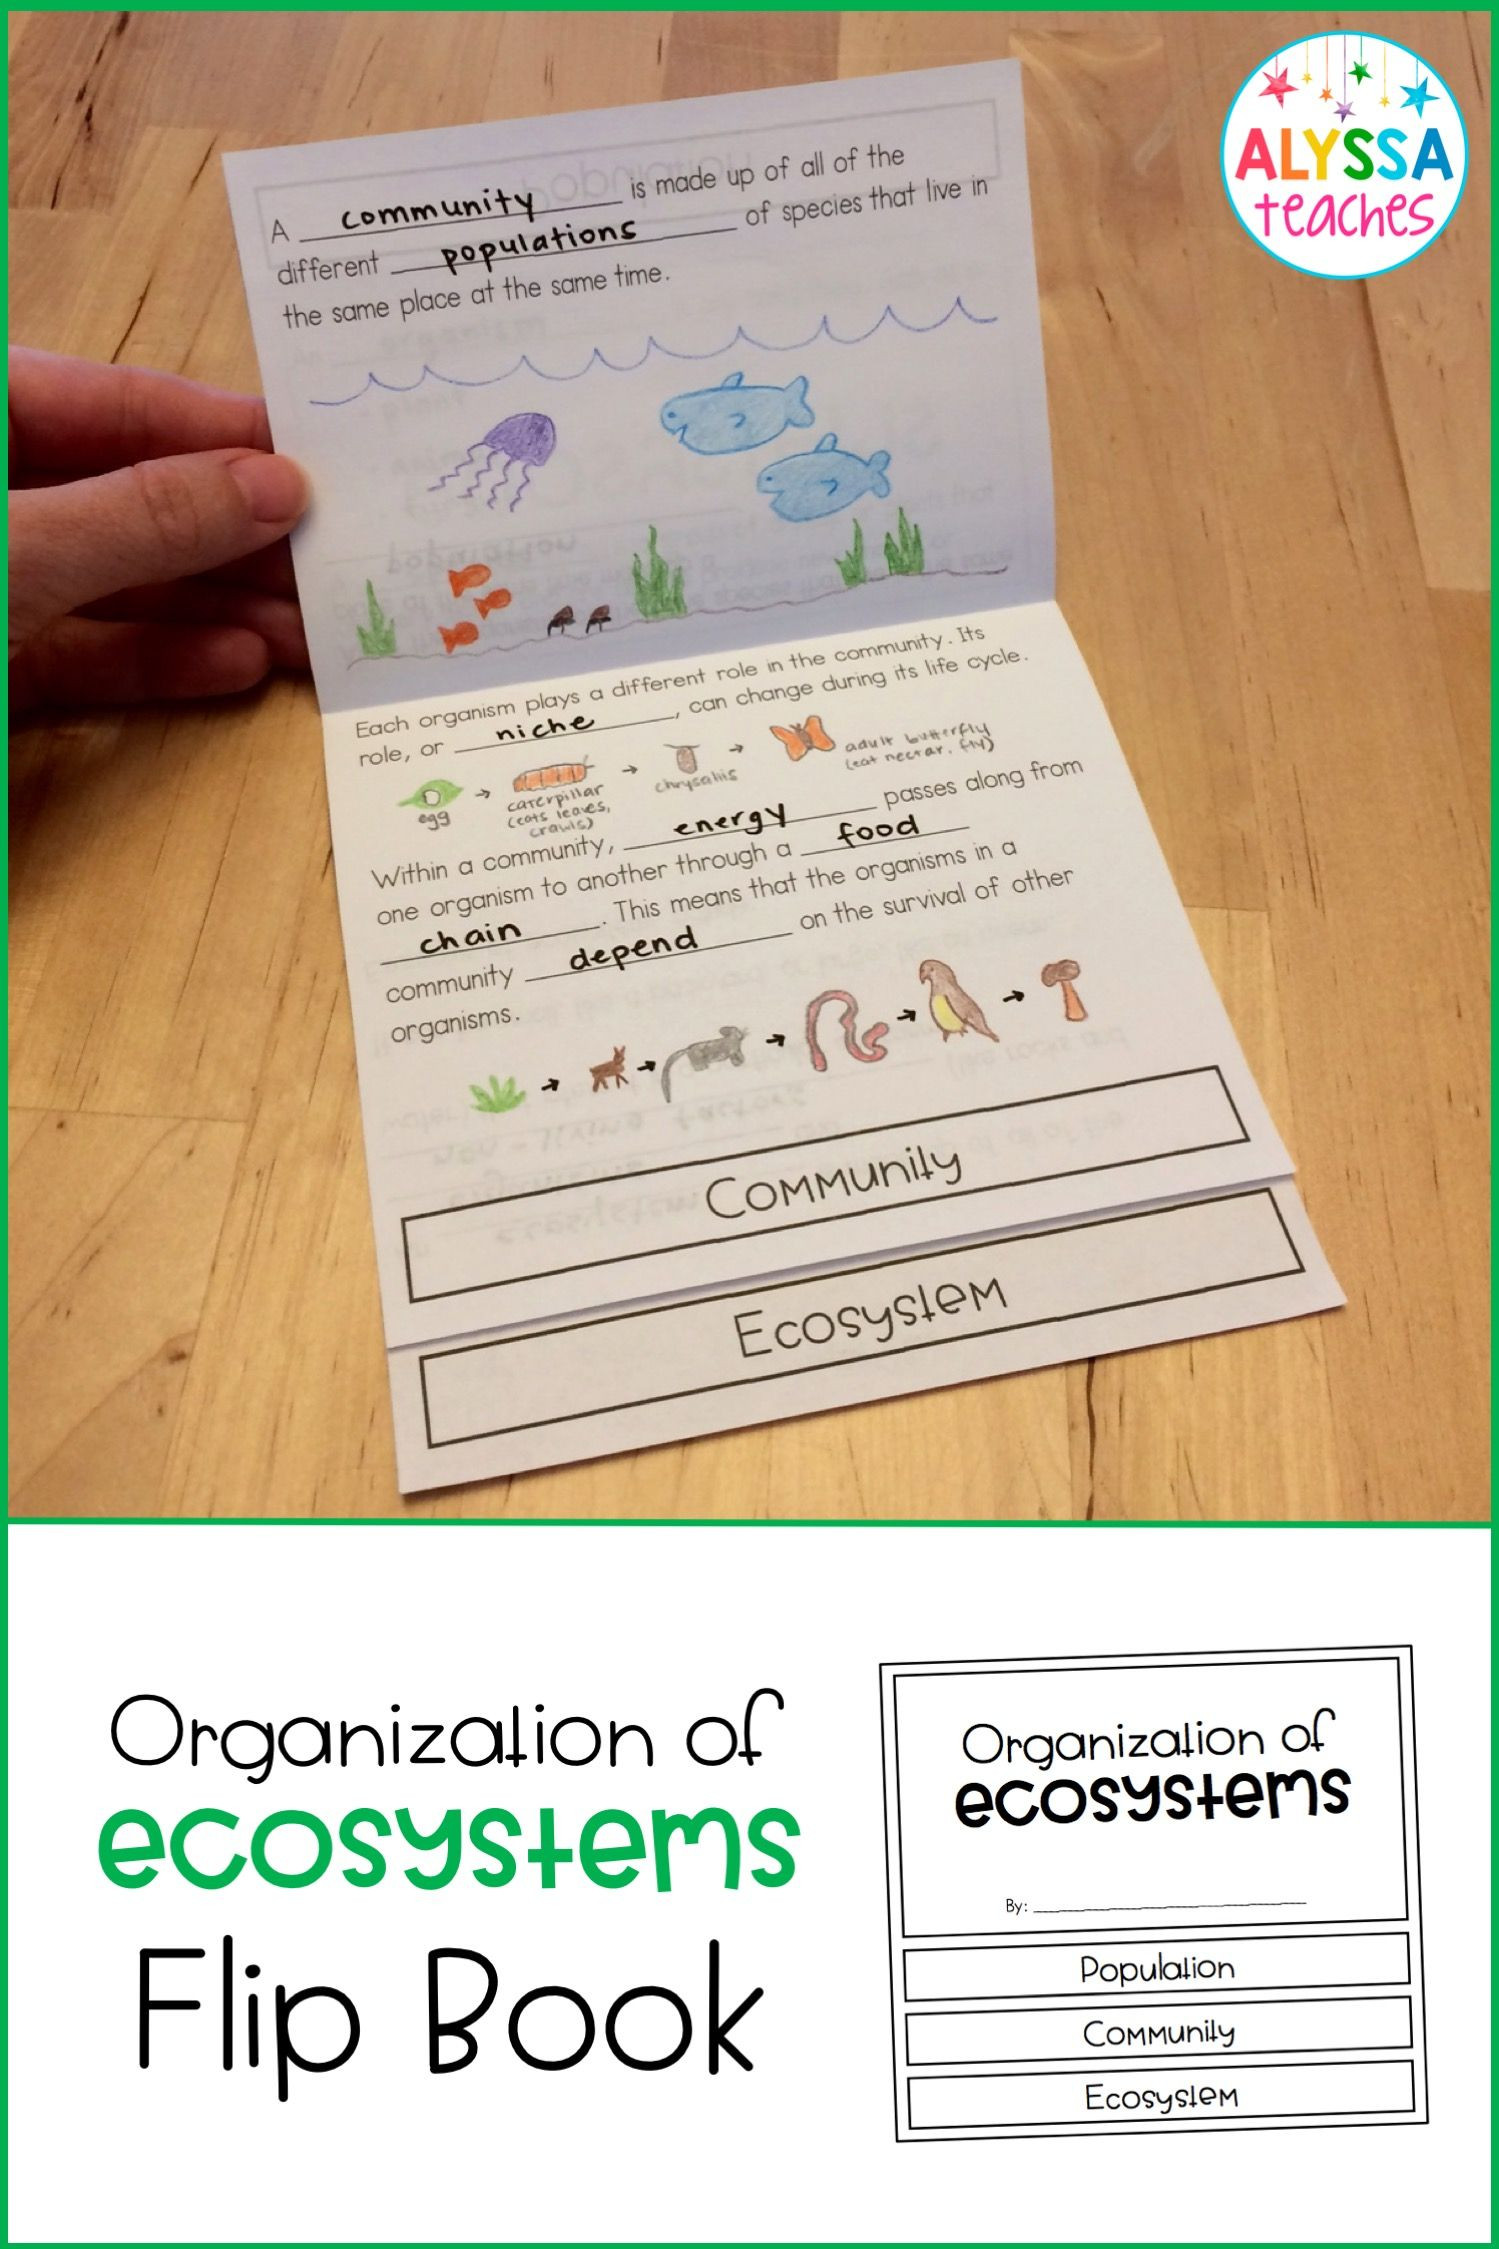 3rd Grade Ecosystem Worksheets Plant and Animal Adaptations Flip Book